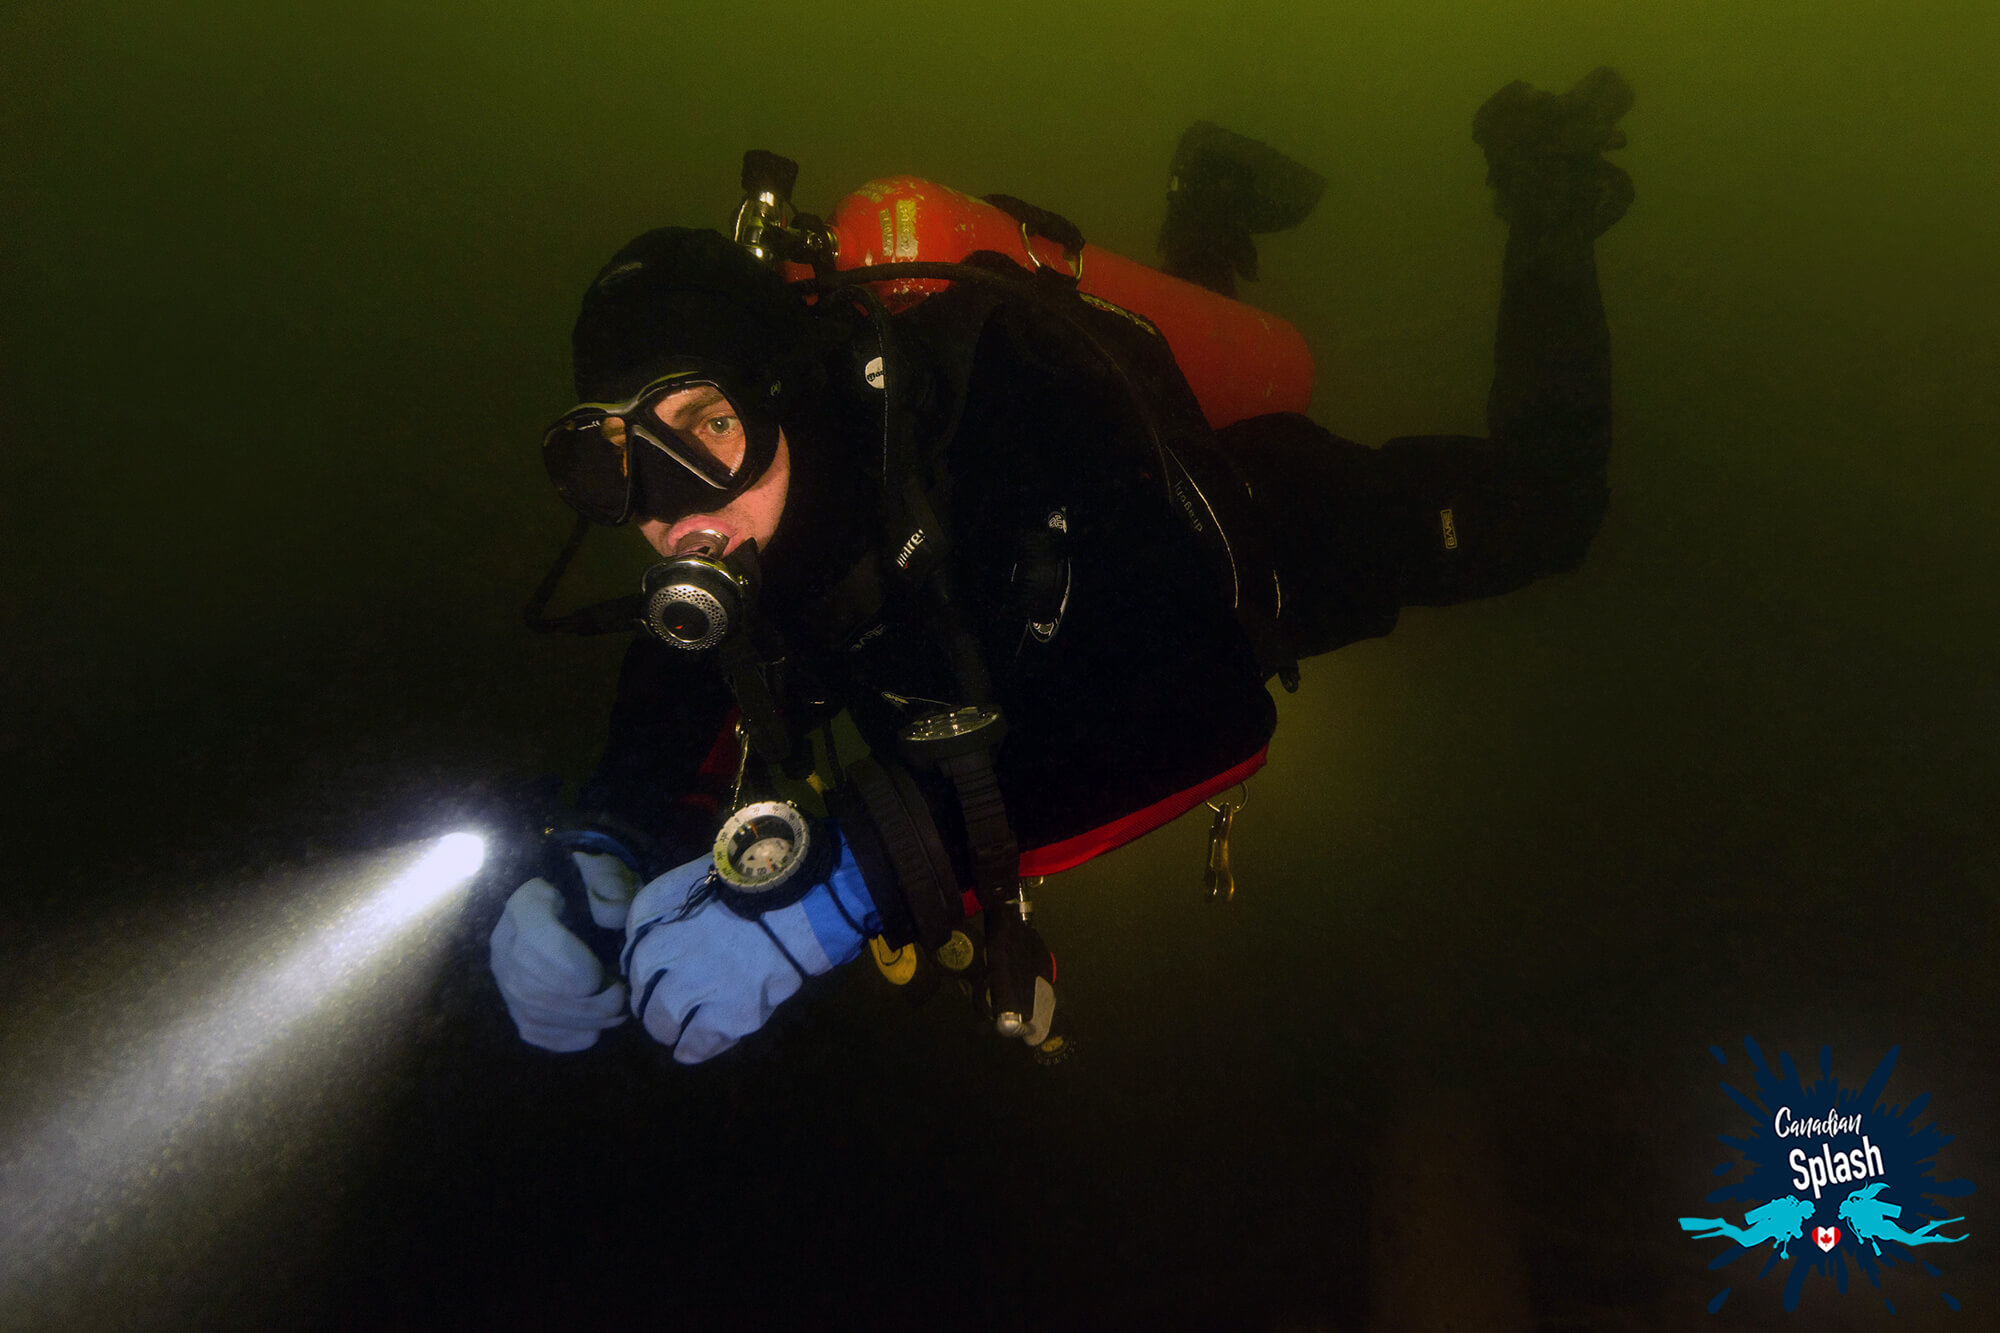 Scuba Diver Joey Exploring The Depths Of Lake Temagami With His Dive Light, Finlayson Provincial Park, Temagami Ontario, Scuba Diving Canada